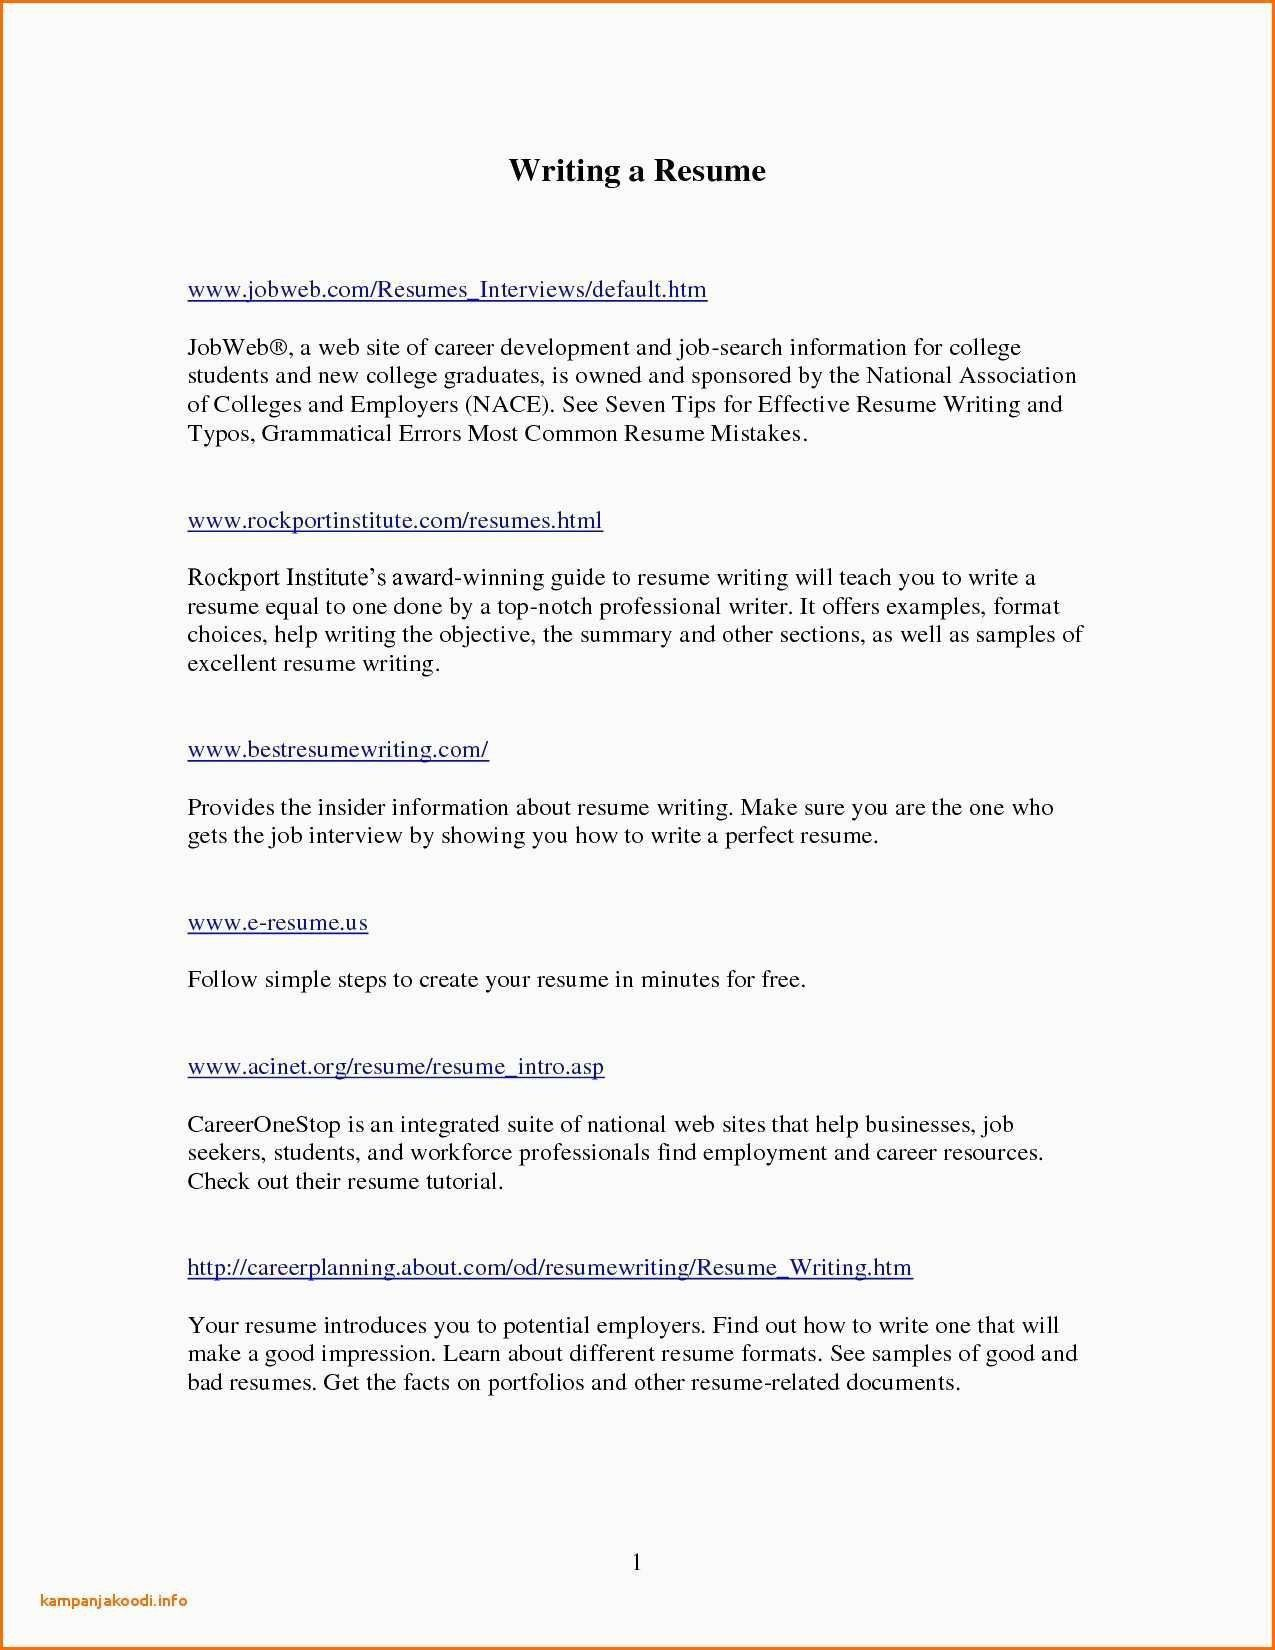 Professional Resume Writing Services Near Me Best Resume Examples